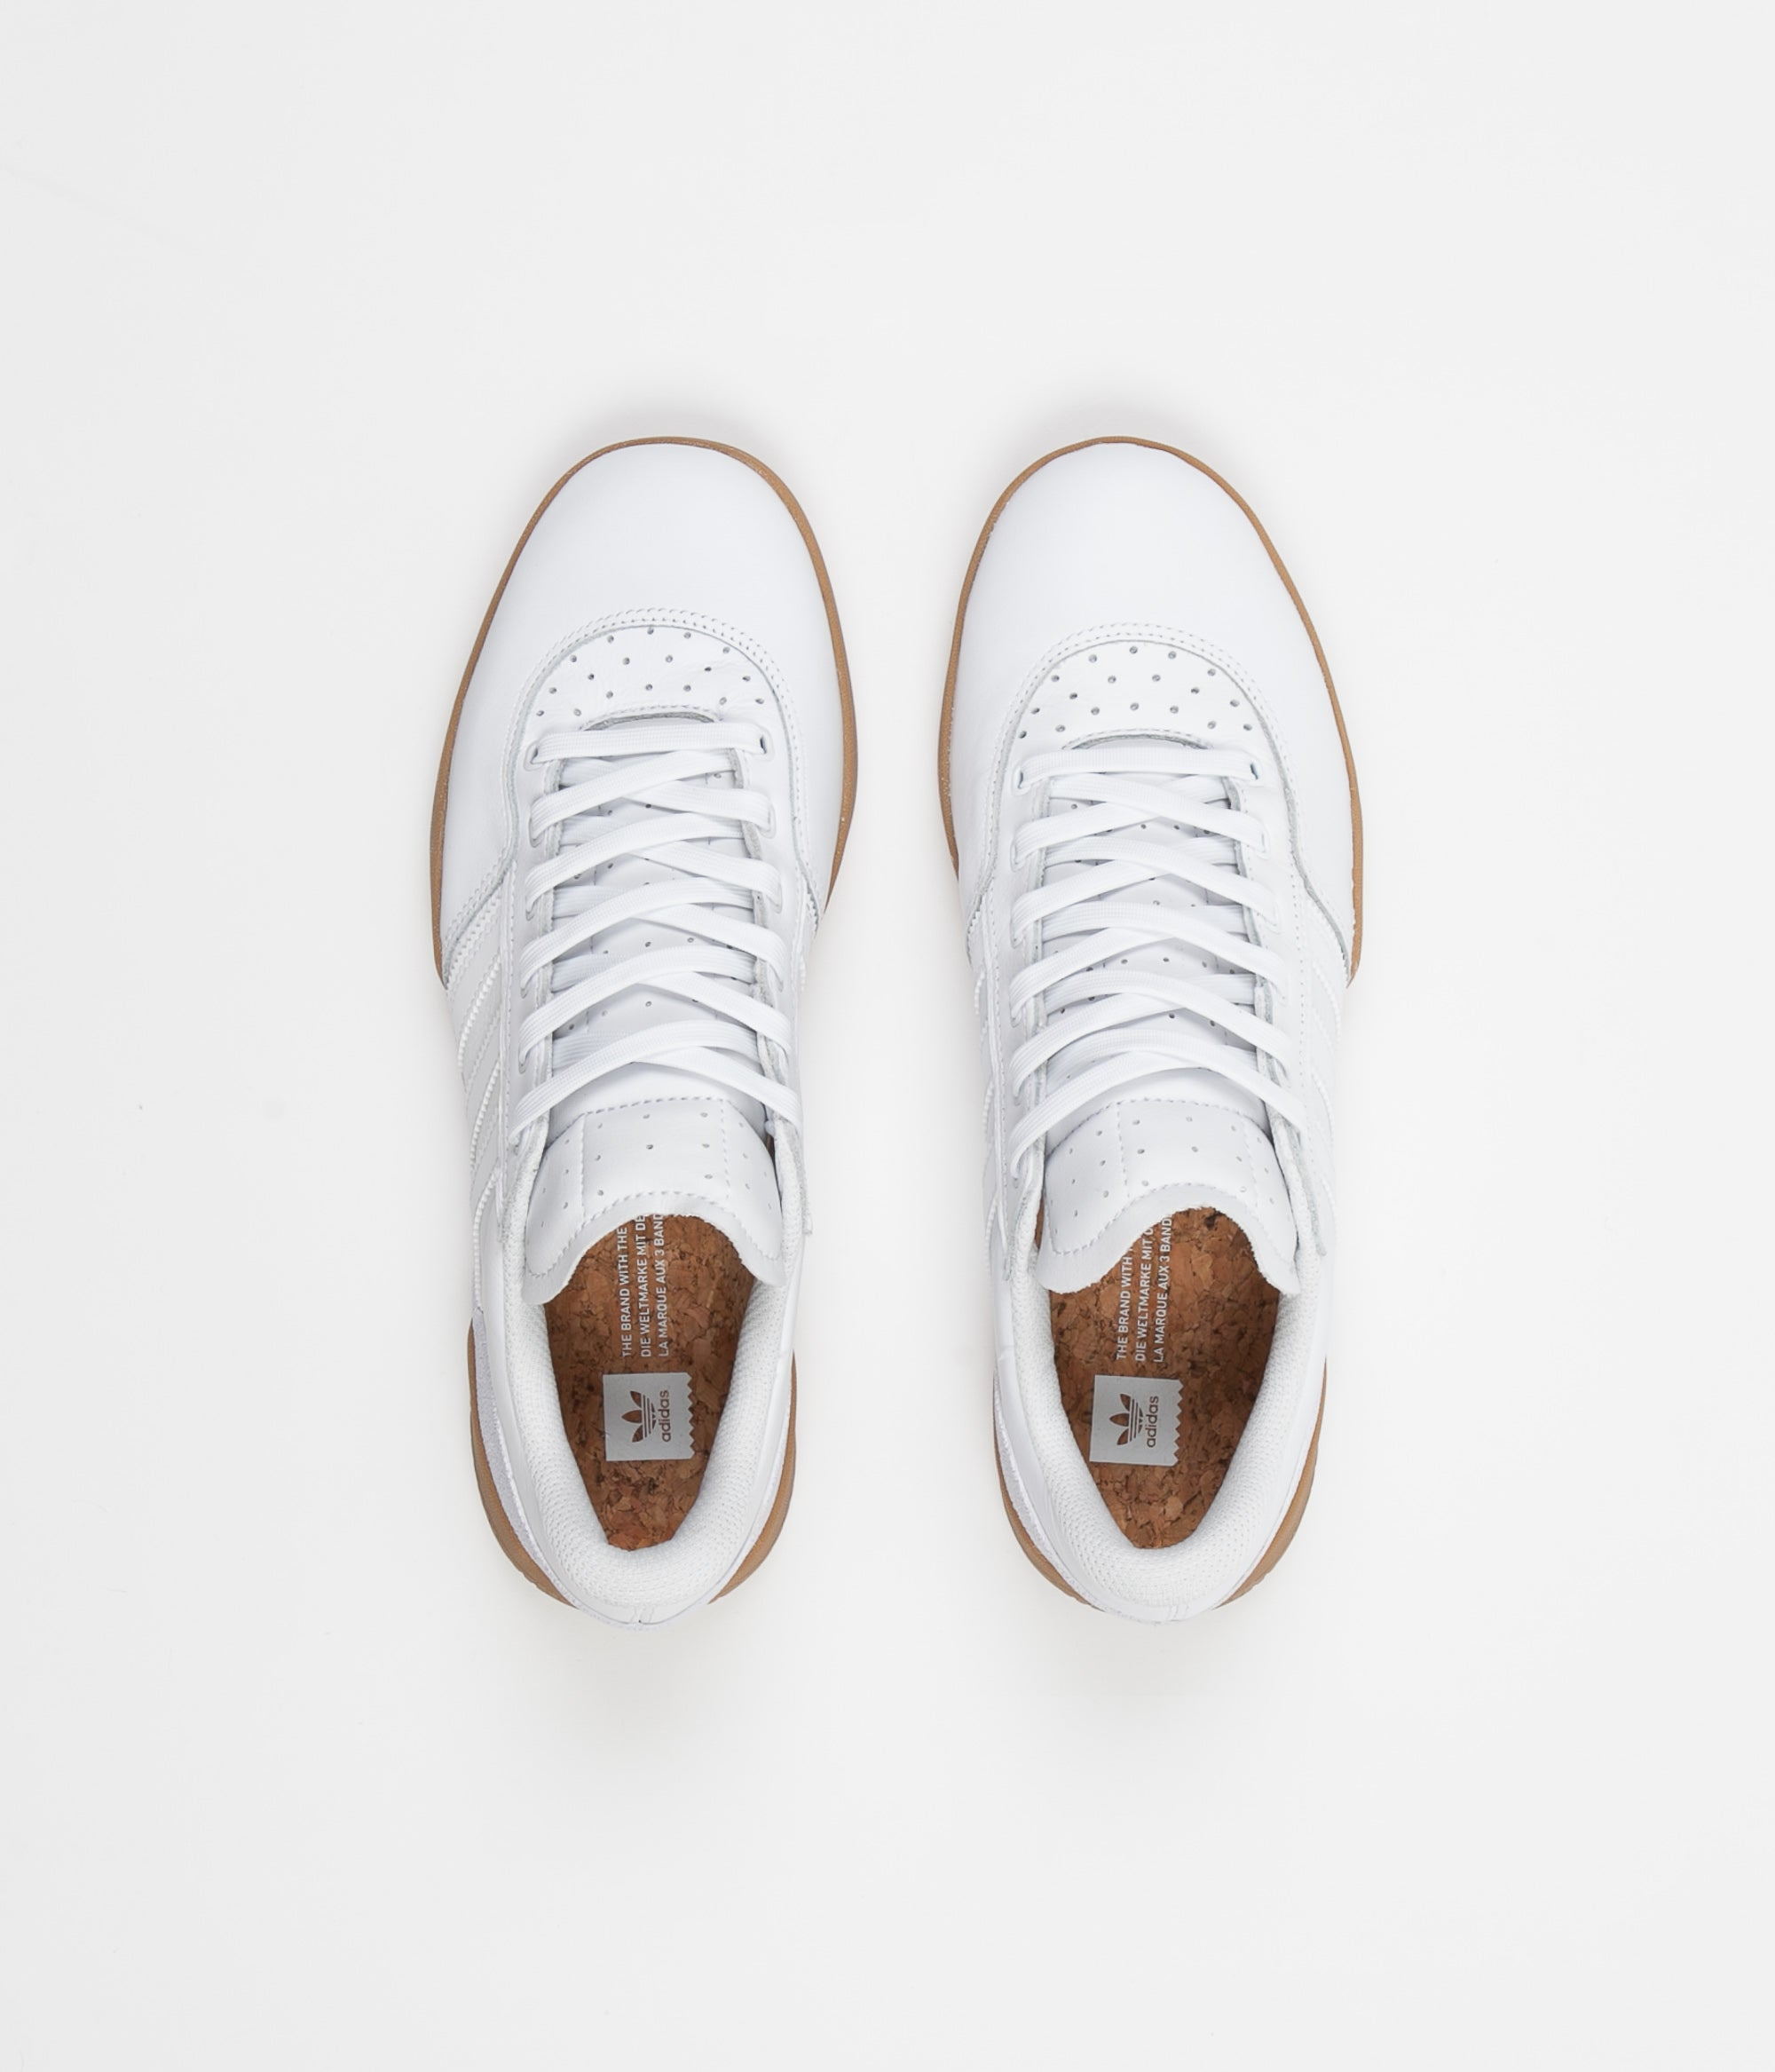 Adidas City Cup Shoes - FTW White / FTW White / Gum4